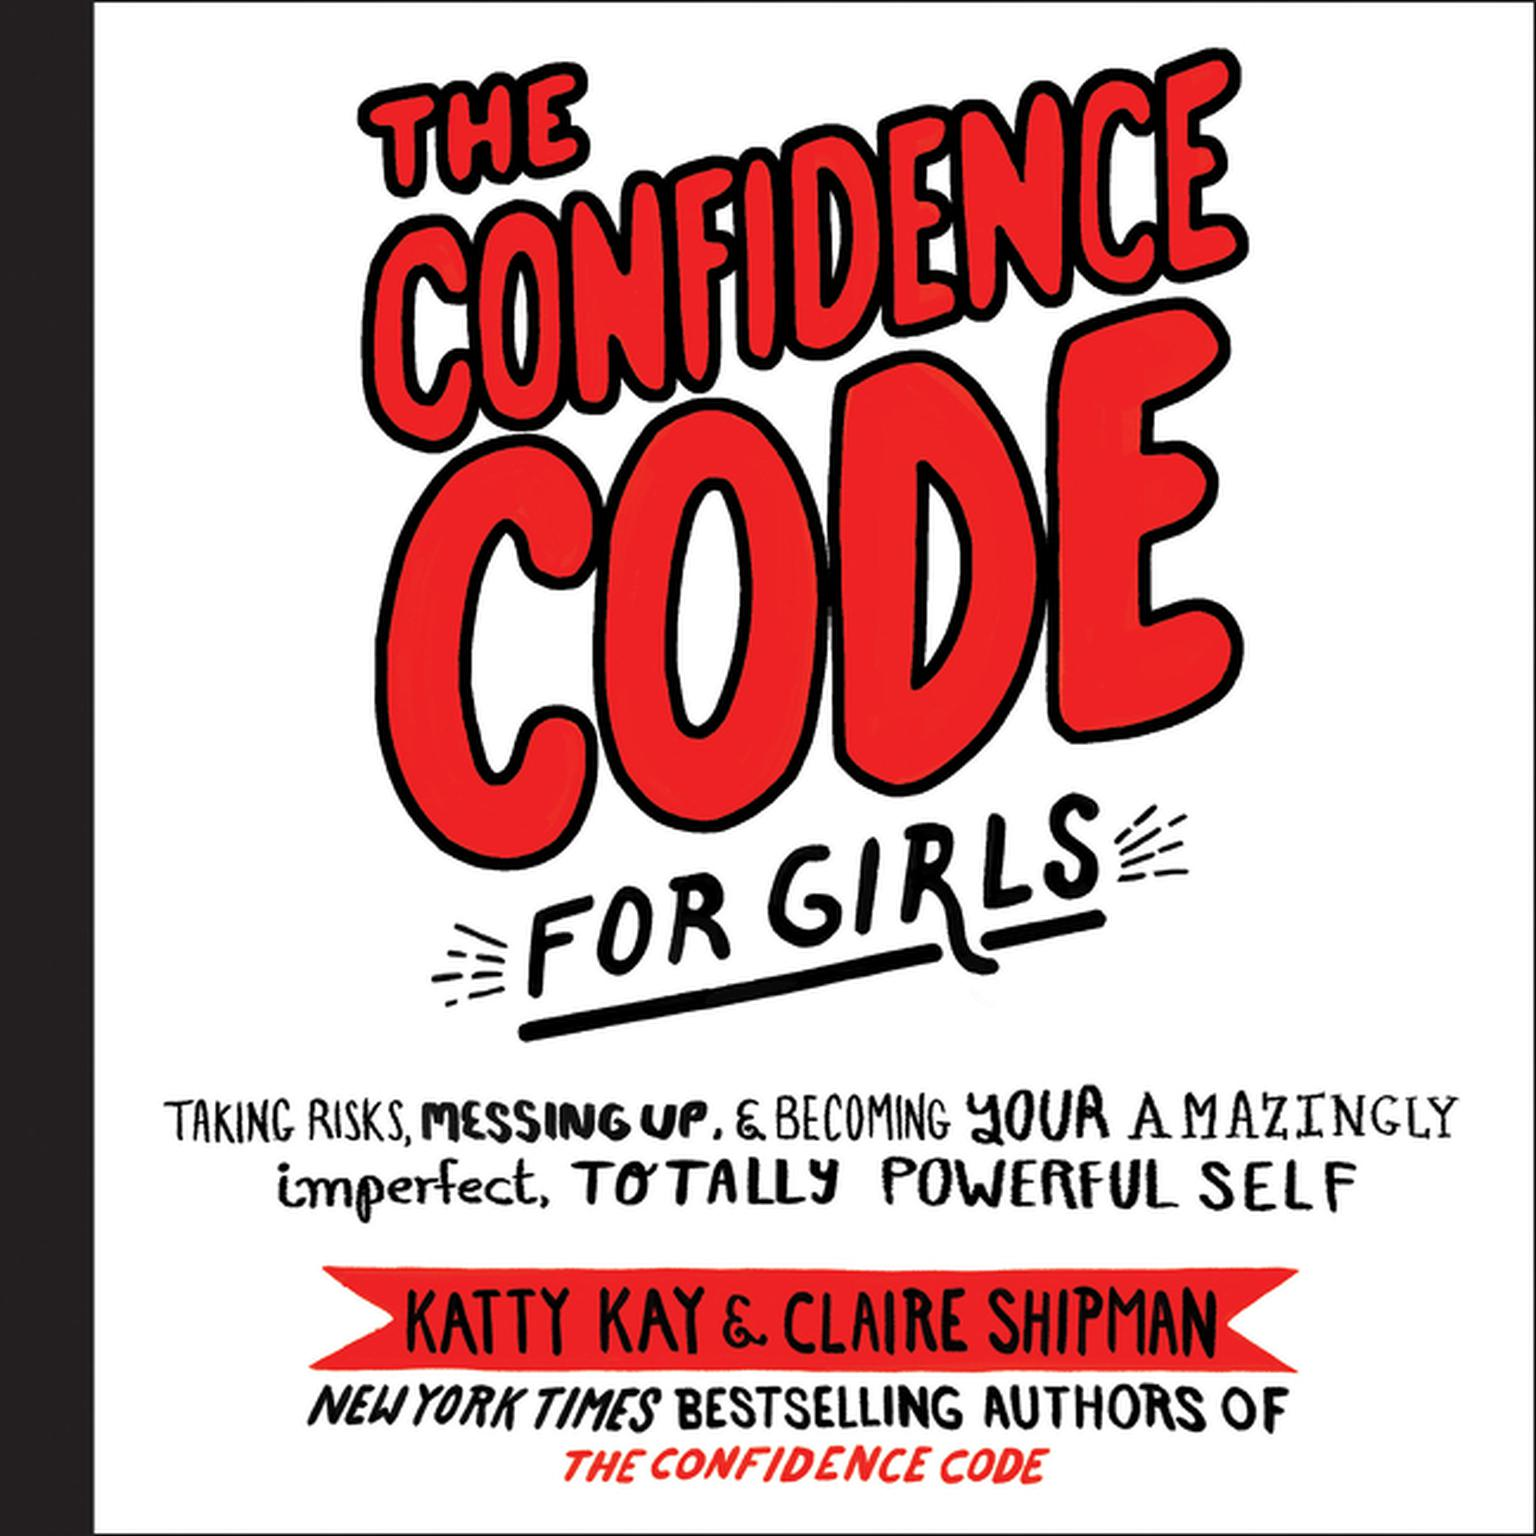 The Confidence Code for Girls: Taking Risks, Messing Up, & Becoming Your Amazingly Imperfect, Totally Powerful Self Audiobook, by Katty Kay